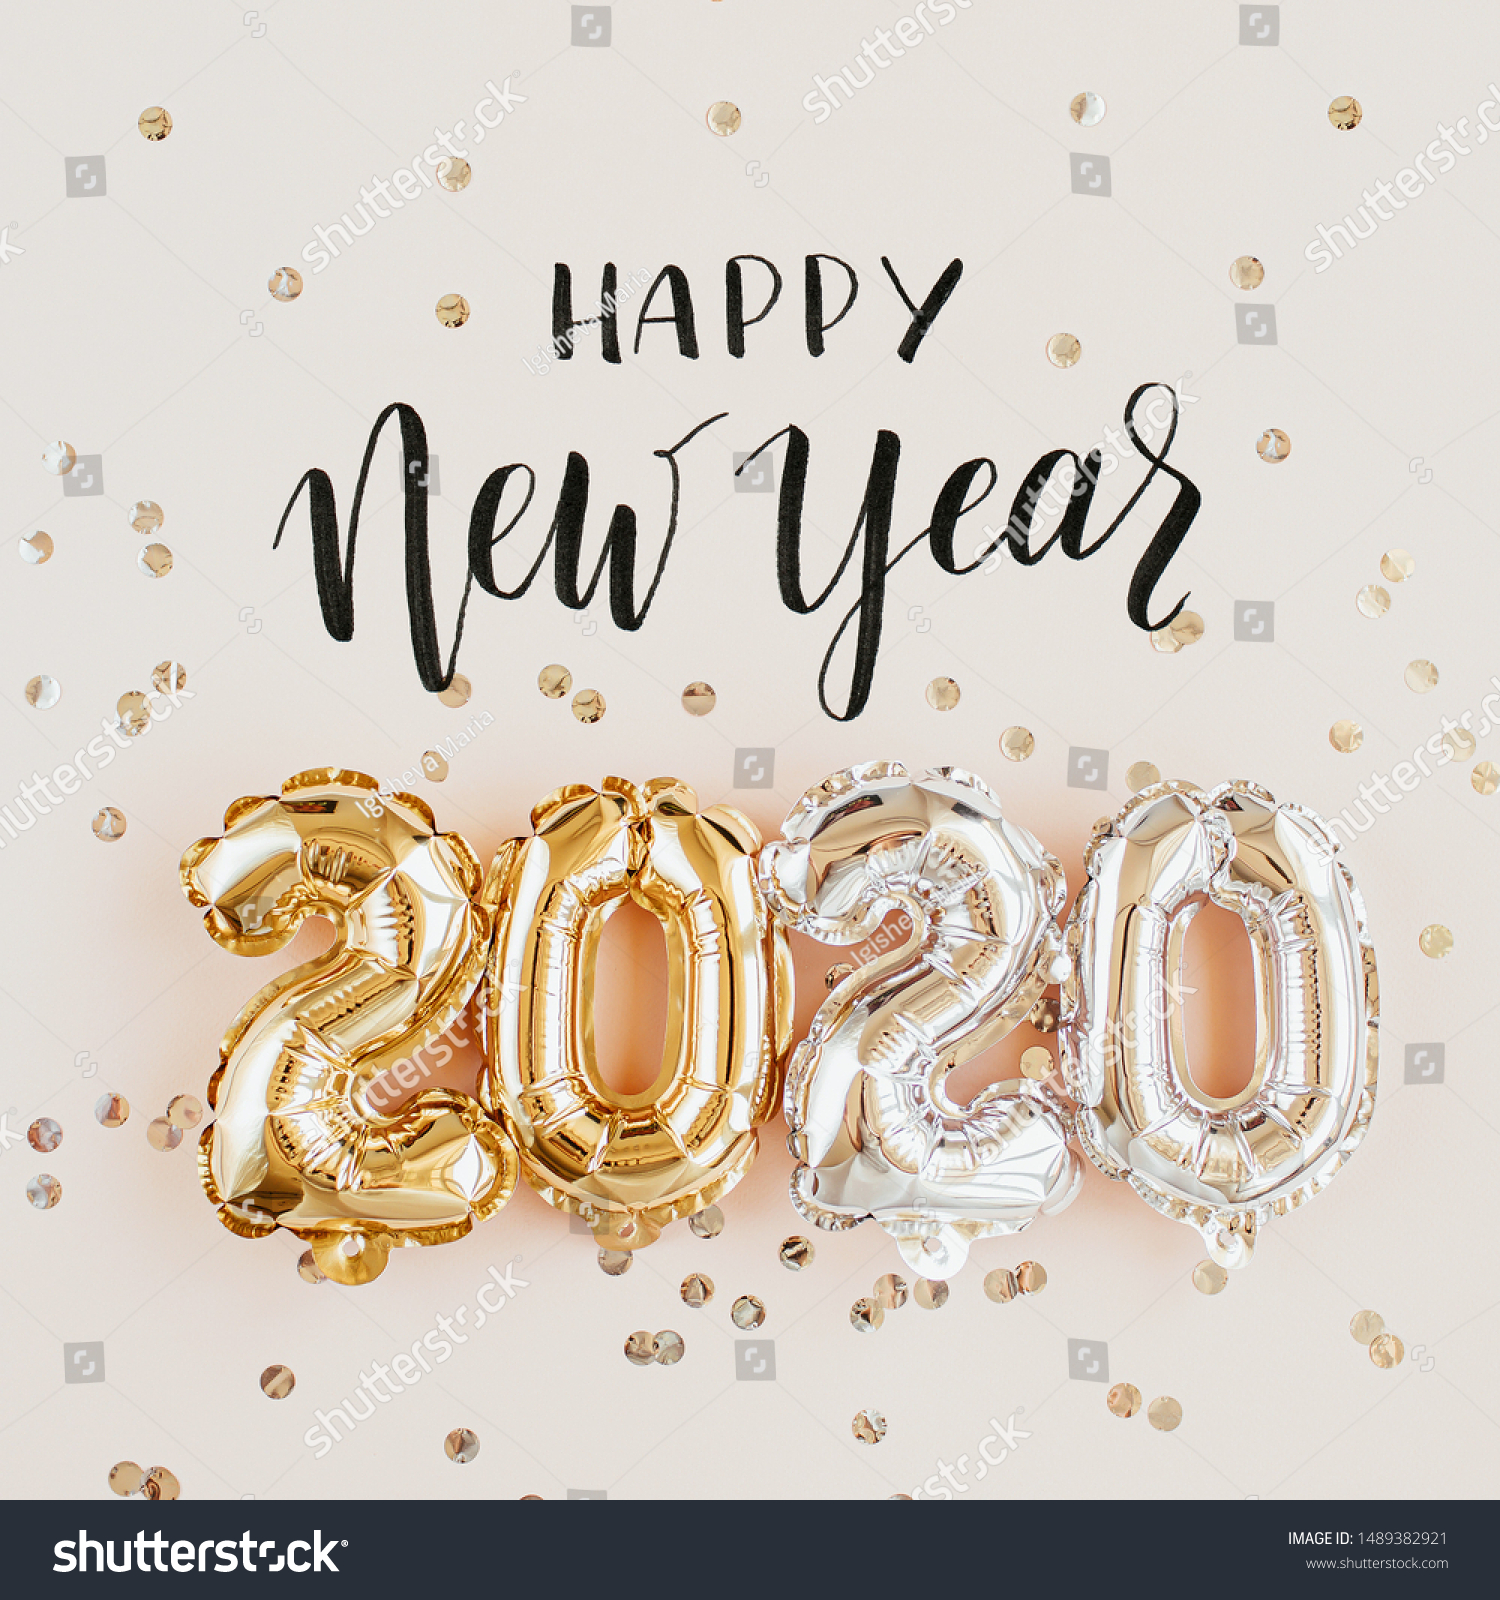 Happy New year 2020 celebration. Gold and silver foil balloons numeral 2020 and confetti on pink background. Flat lay #1489382921